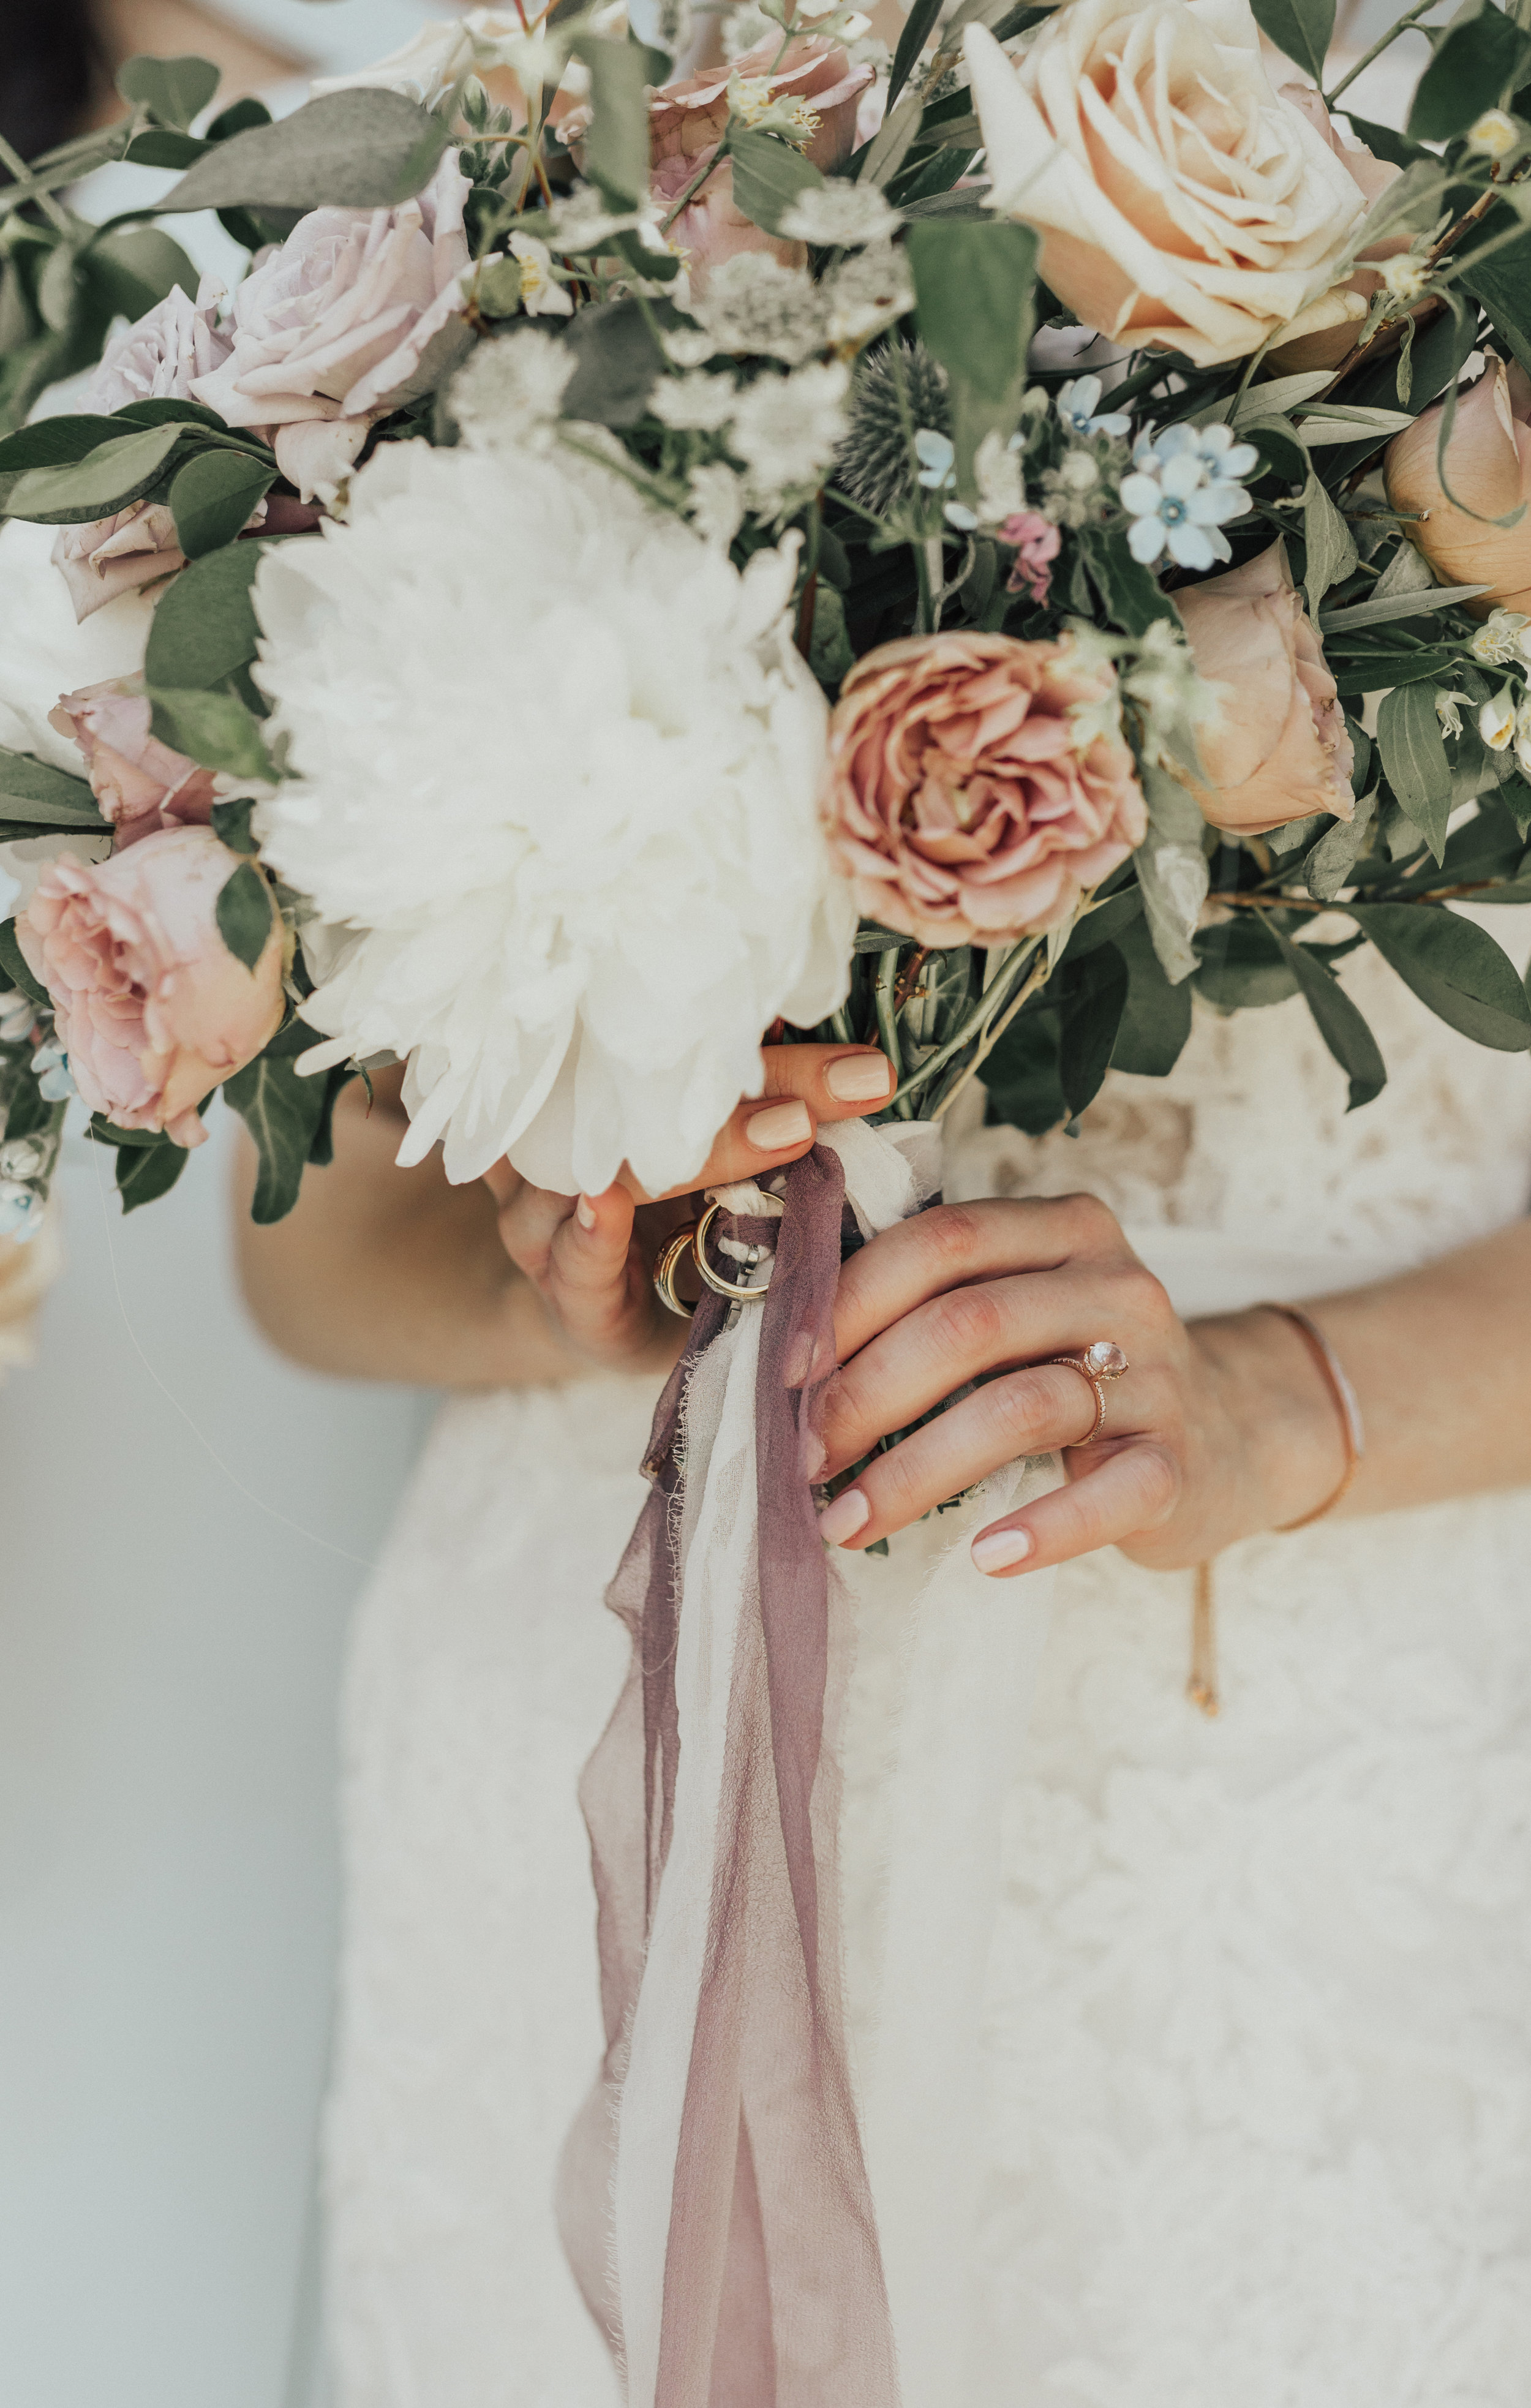 Greystone Mansion, Greystone Mansion Beverly Hills, Beverly Hills Wedding, California Estate Wedding, mauve bridal bouquet, white peony bridal bouquet, mauve silk ribbon, lavender bridal bouquet